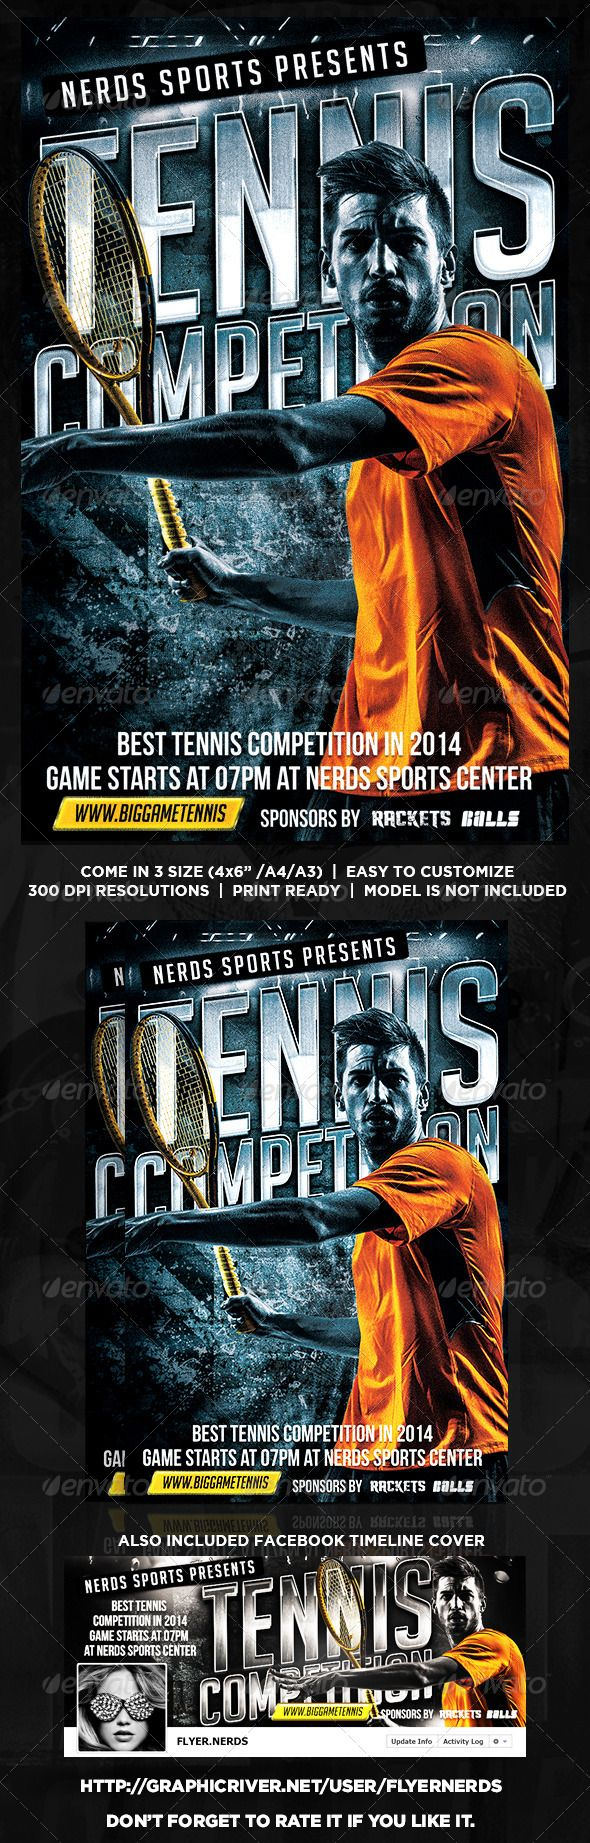 """Tennis Competition Flyer by flyernerds Tennis Competition Flyer Description :Come in 3 Size : 4x6"""" / A4 / A3 with bleedAlso included Facebook Timeline (as shown at previ"""